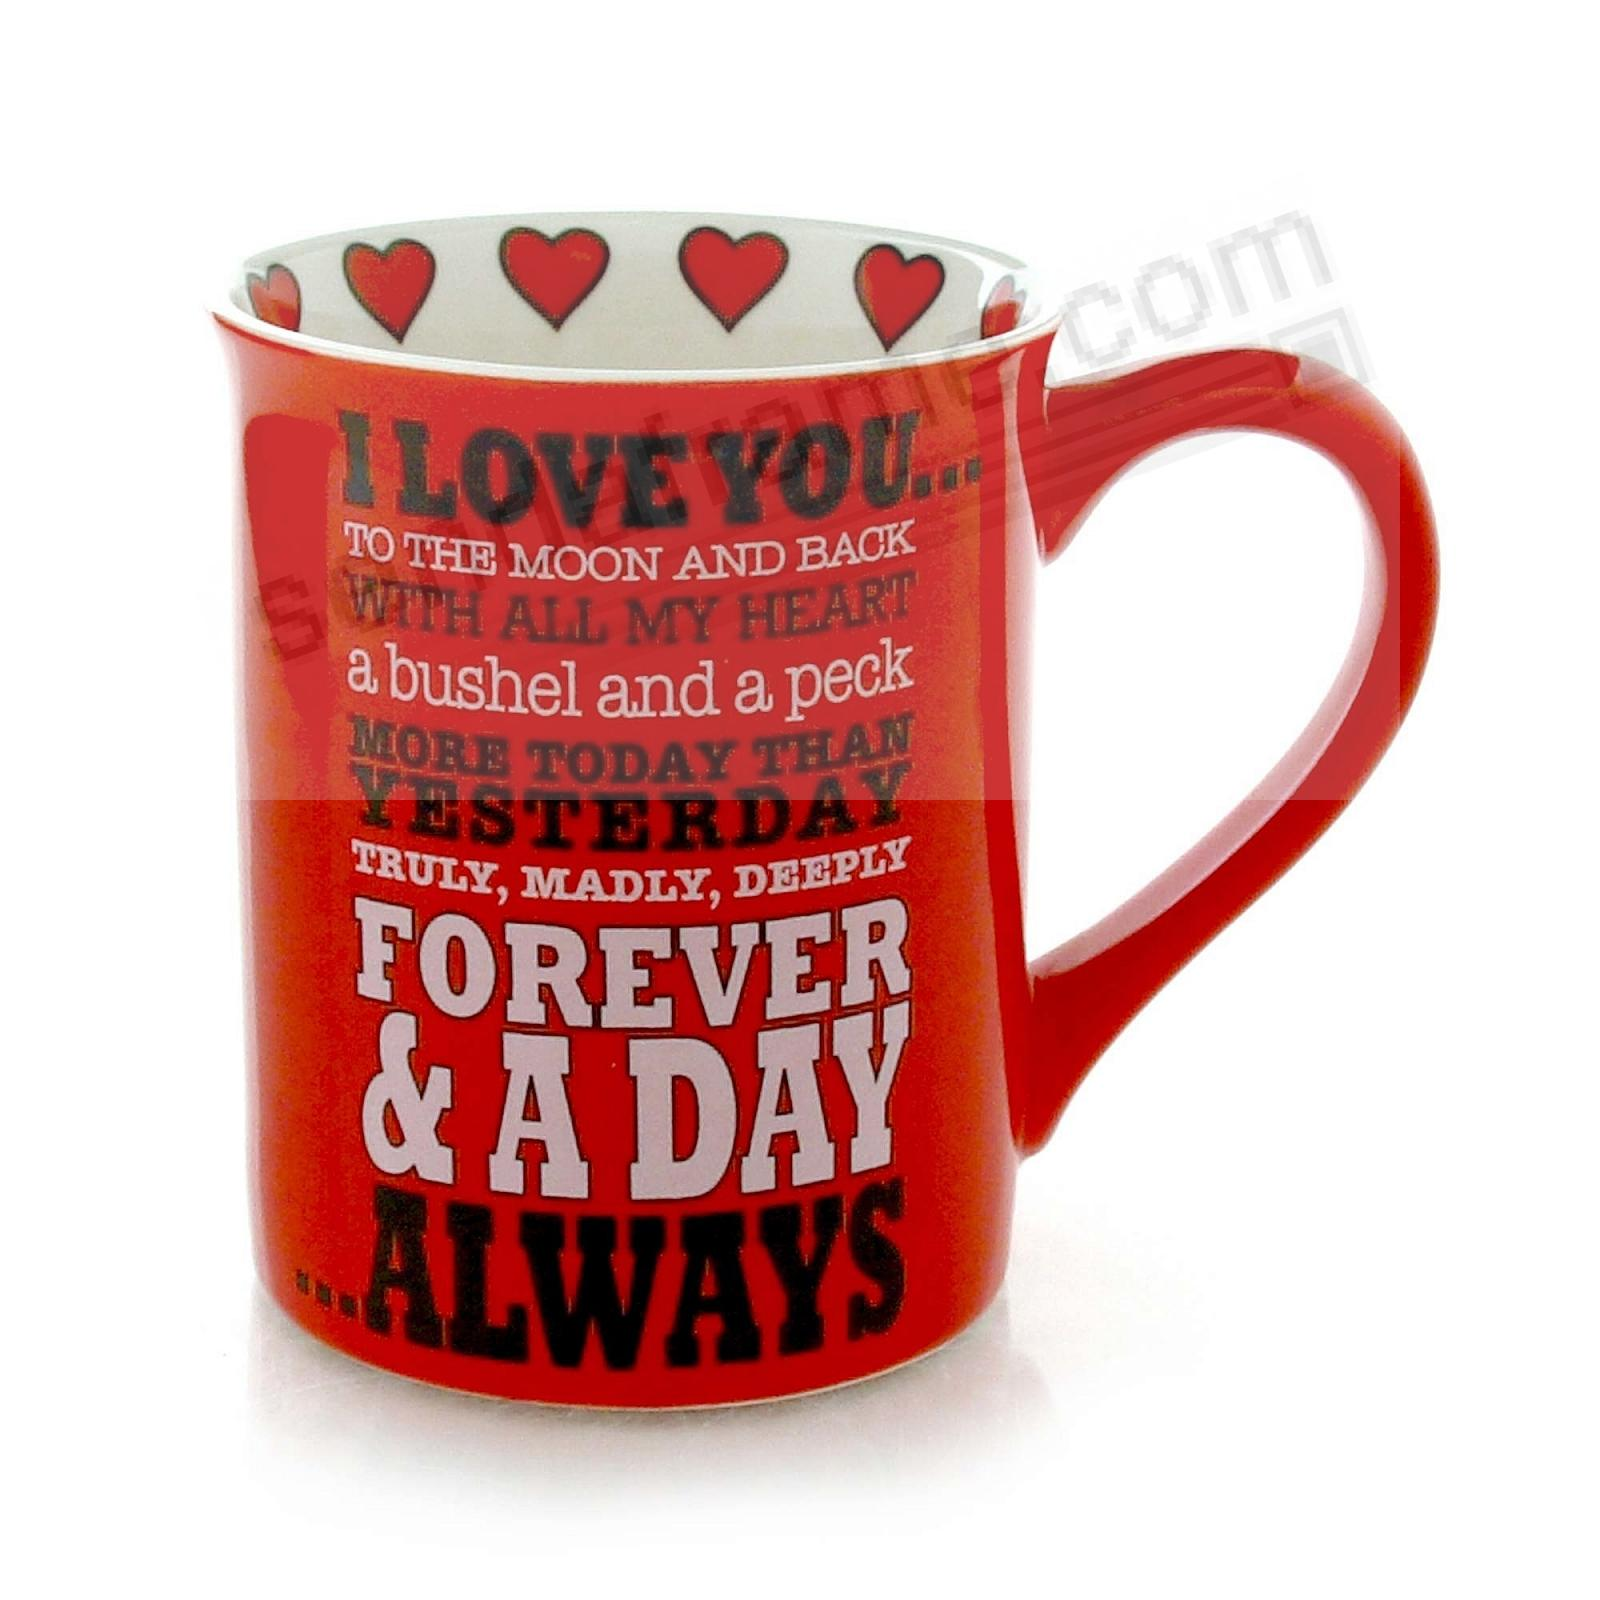 I LOVE YOU ALWAYS MUG by Our Name is Mud®